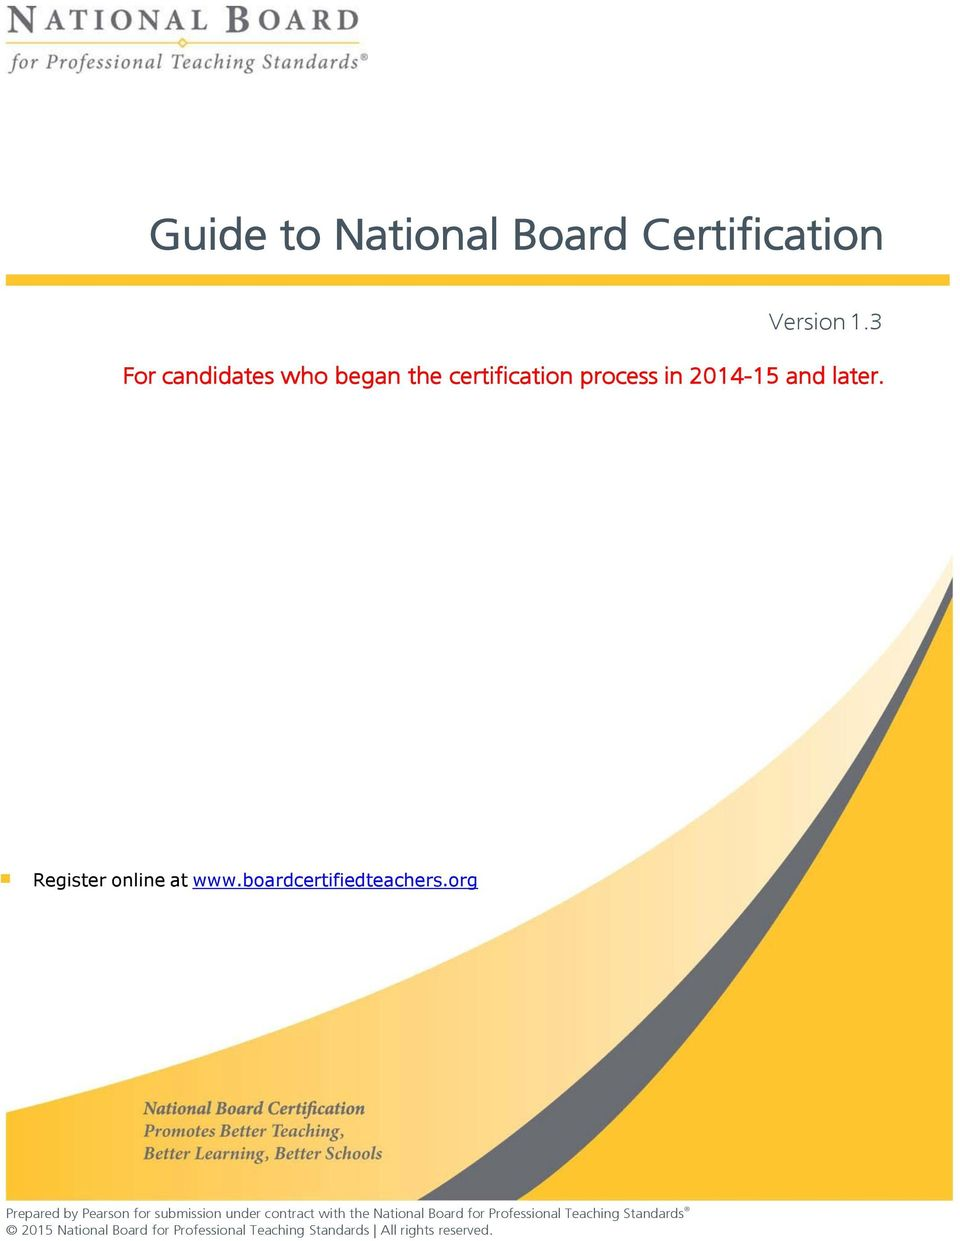 Guide To National Board Certification Pdf